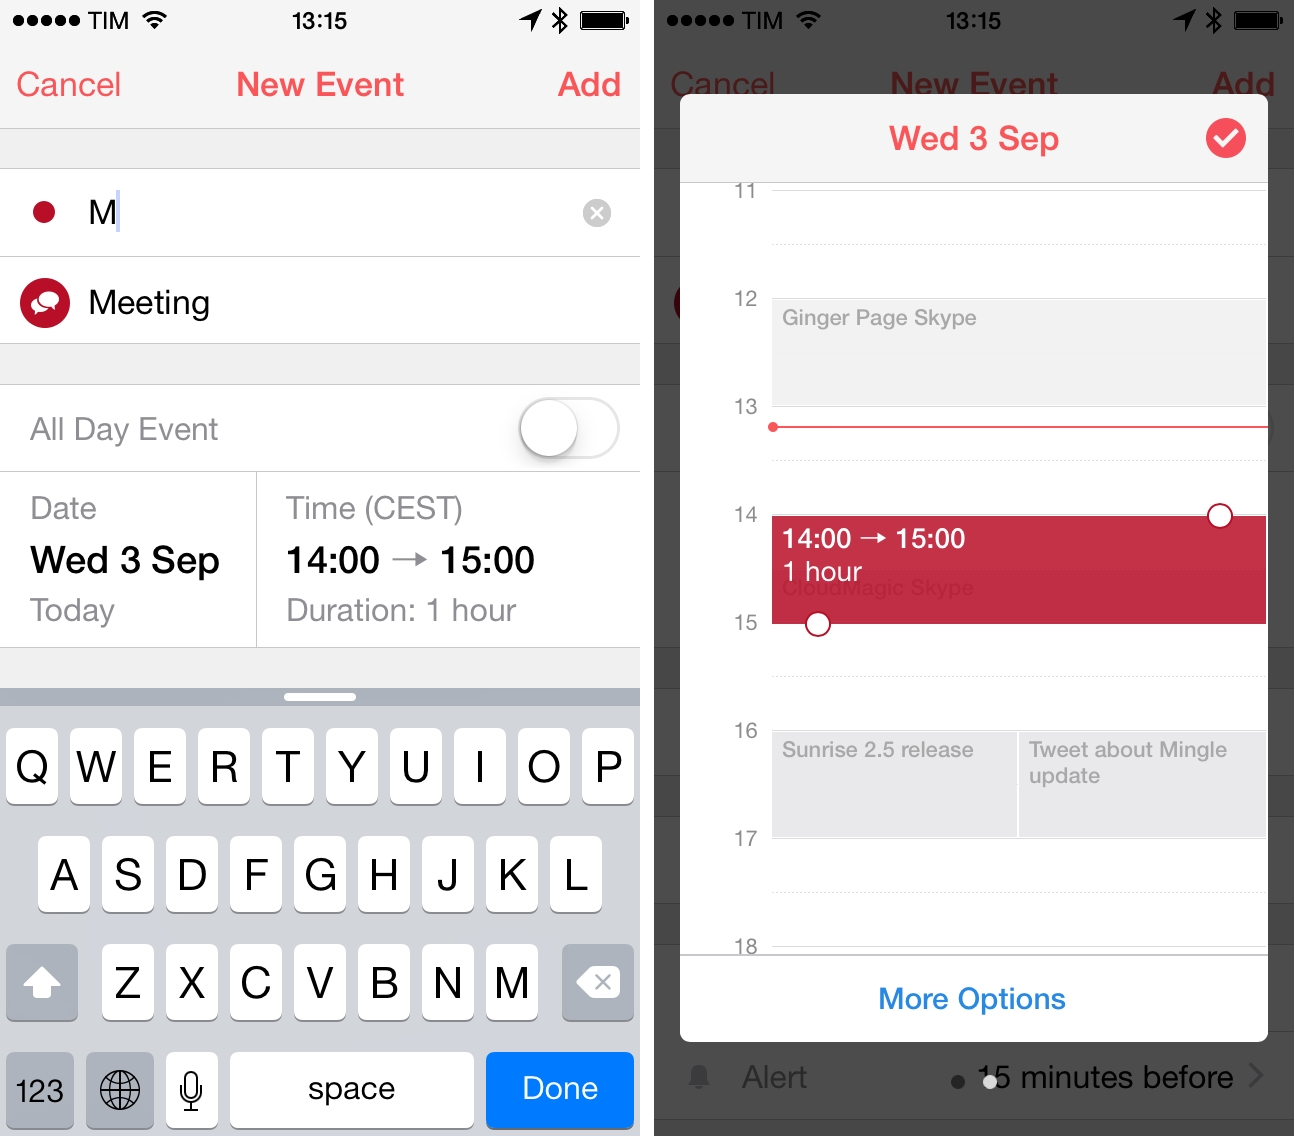 Sunrise's UI for creating events with automatic icon suggestion (left) and day preview (right).